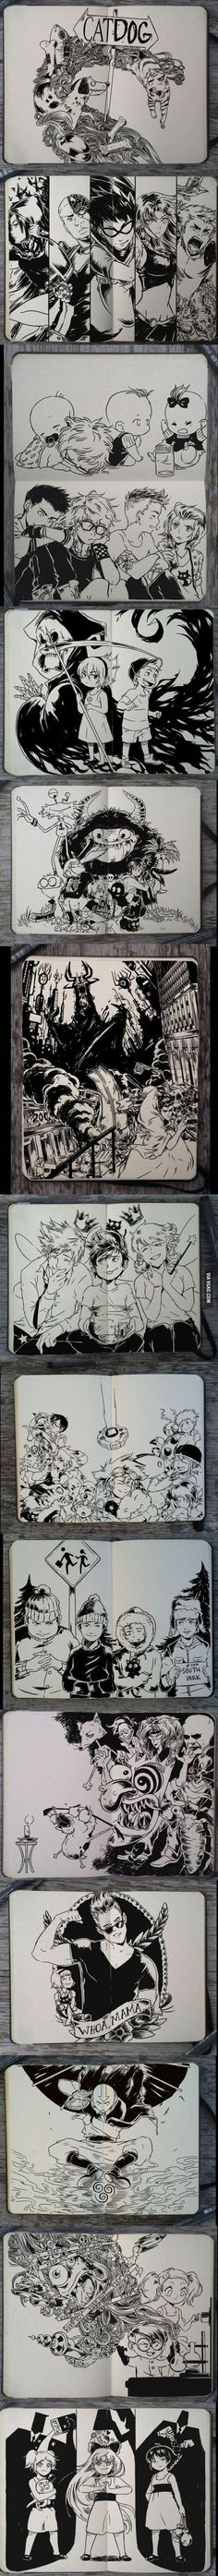 My childhood cartoons in real manga style. Except for South Park, that's NOT for kids: